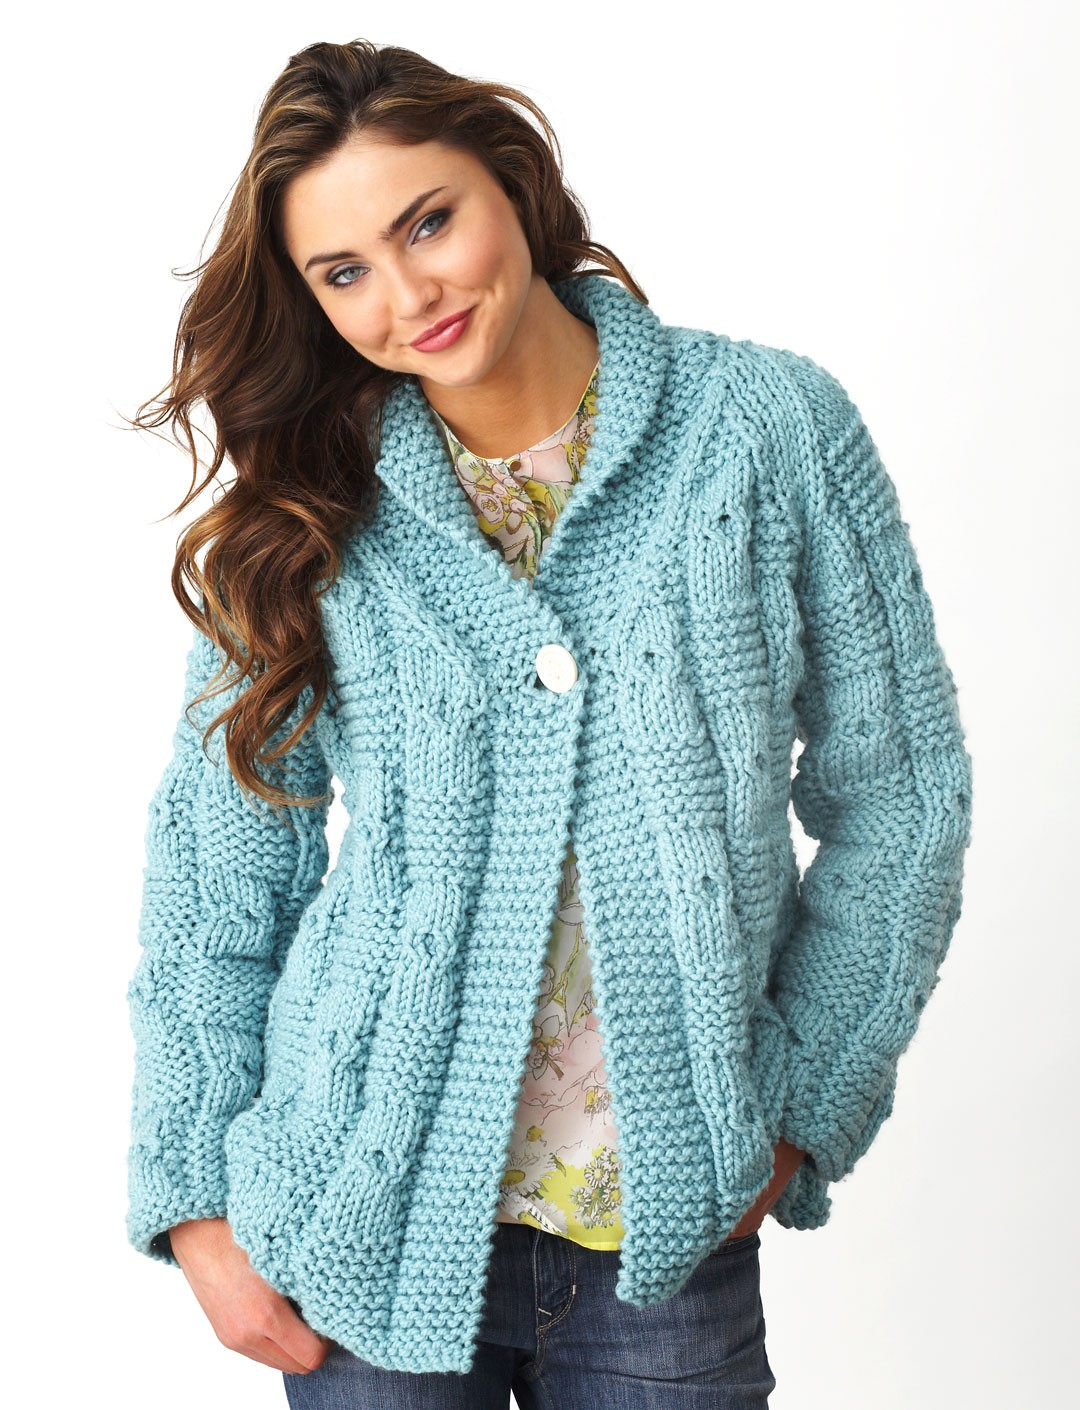 Knitting Pattern For Chunky Ladies Cardigan : Bernat Textured Checks Cardigan, Knit Pattern Yarnspirations